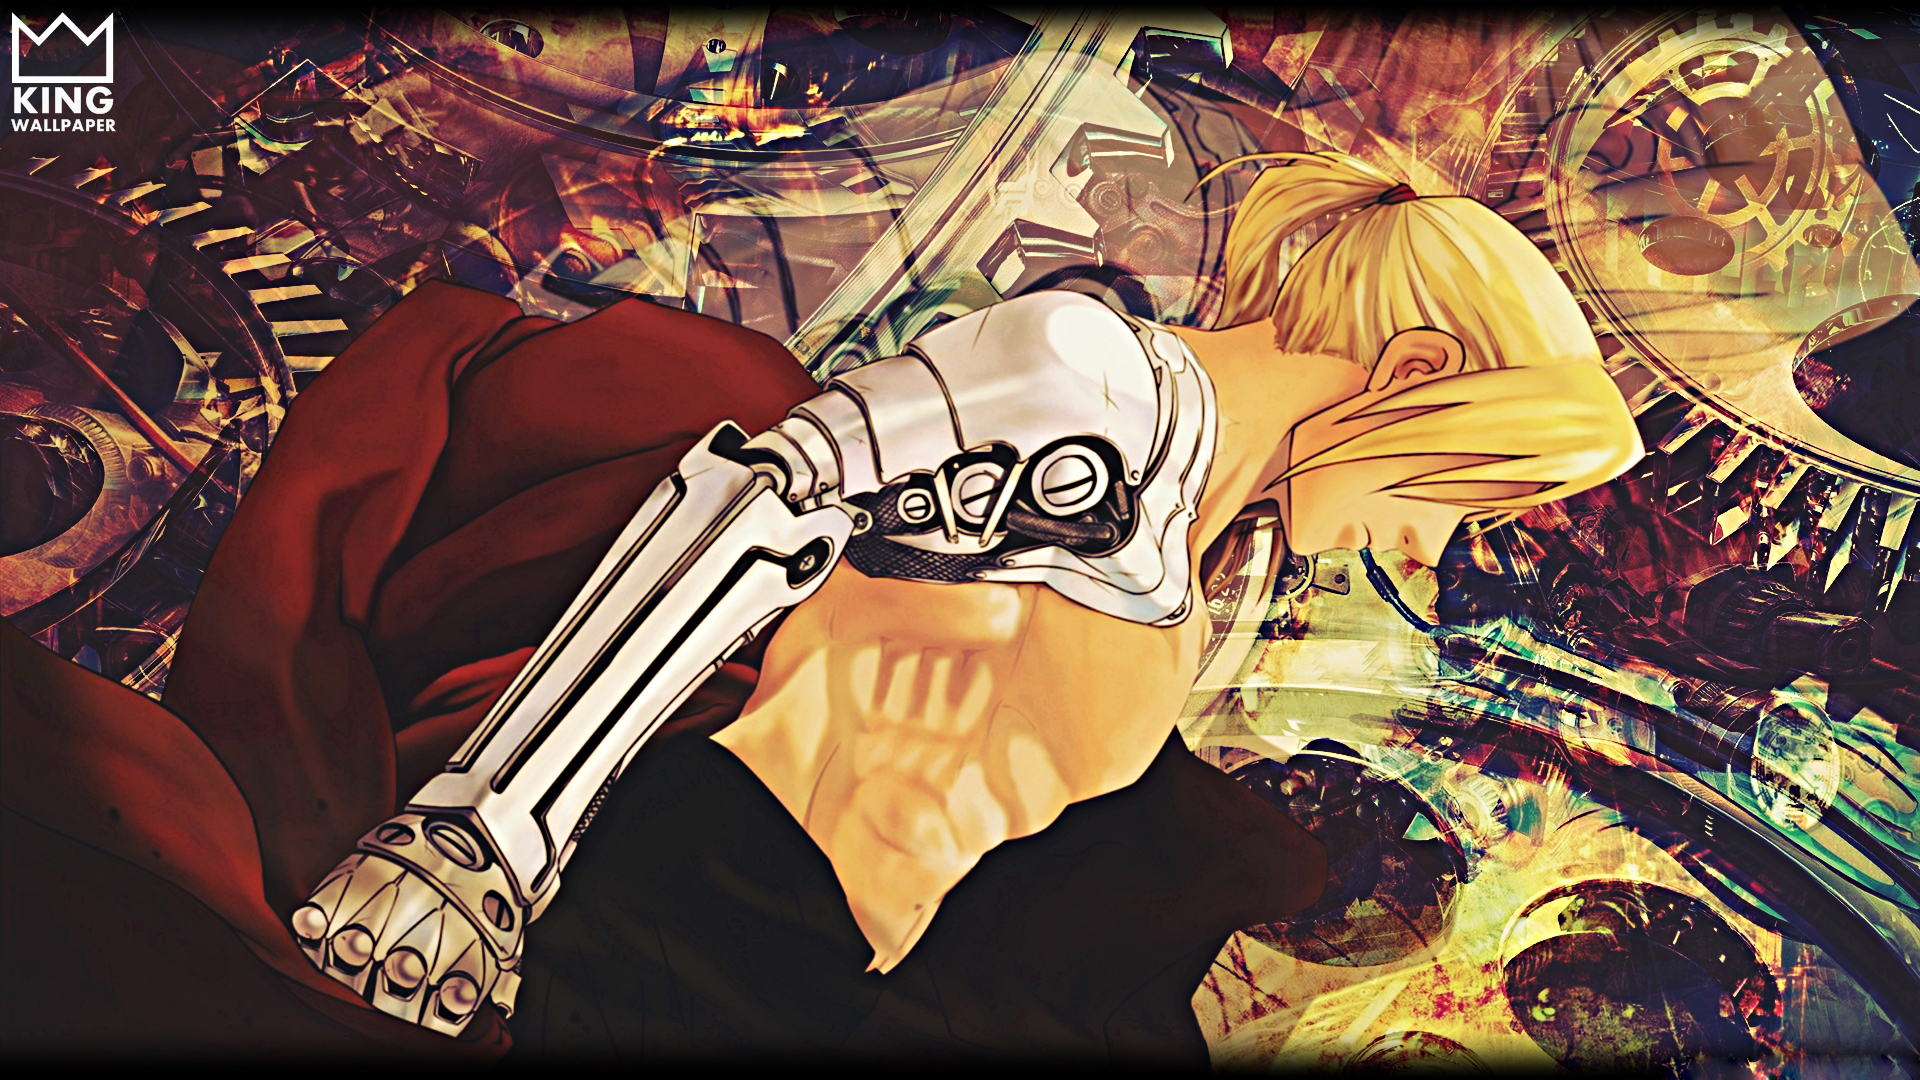 Fullmetal Alchemist Backgrounds 1920x1080